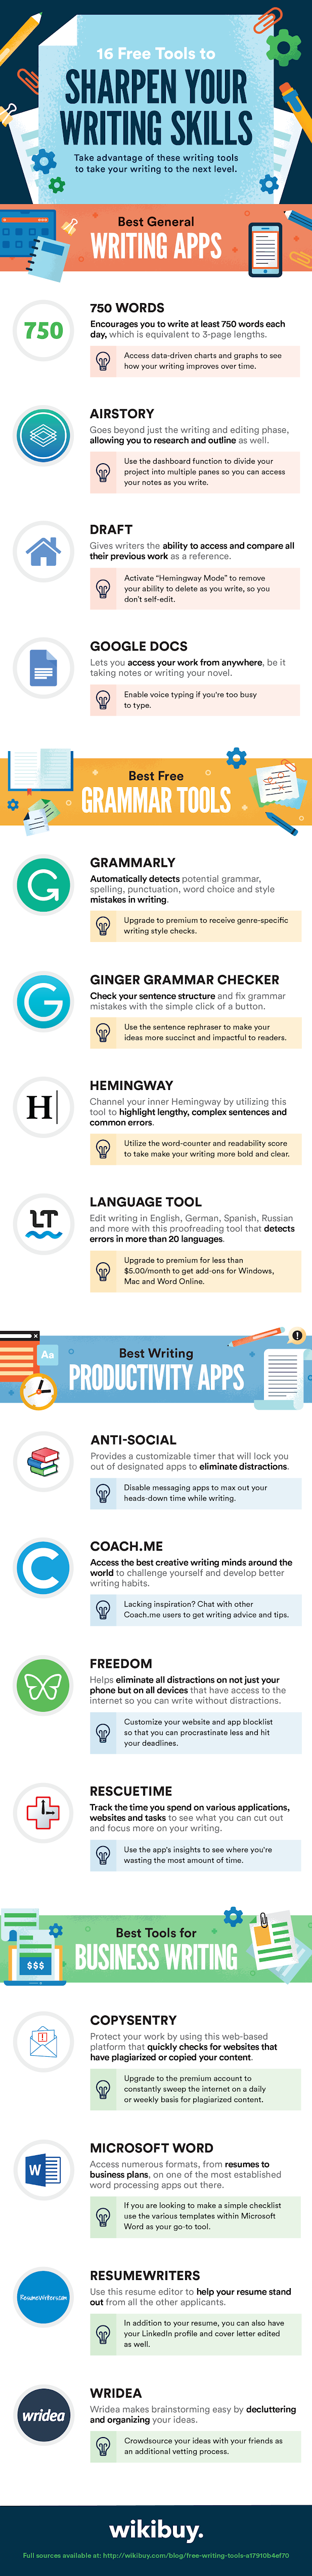 16 Free Tools to Improve Your Writing in 2020 #Infographic